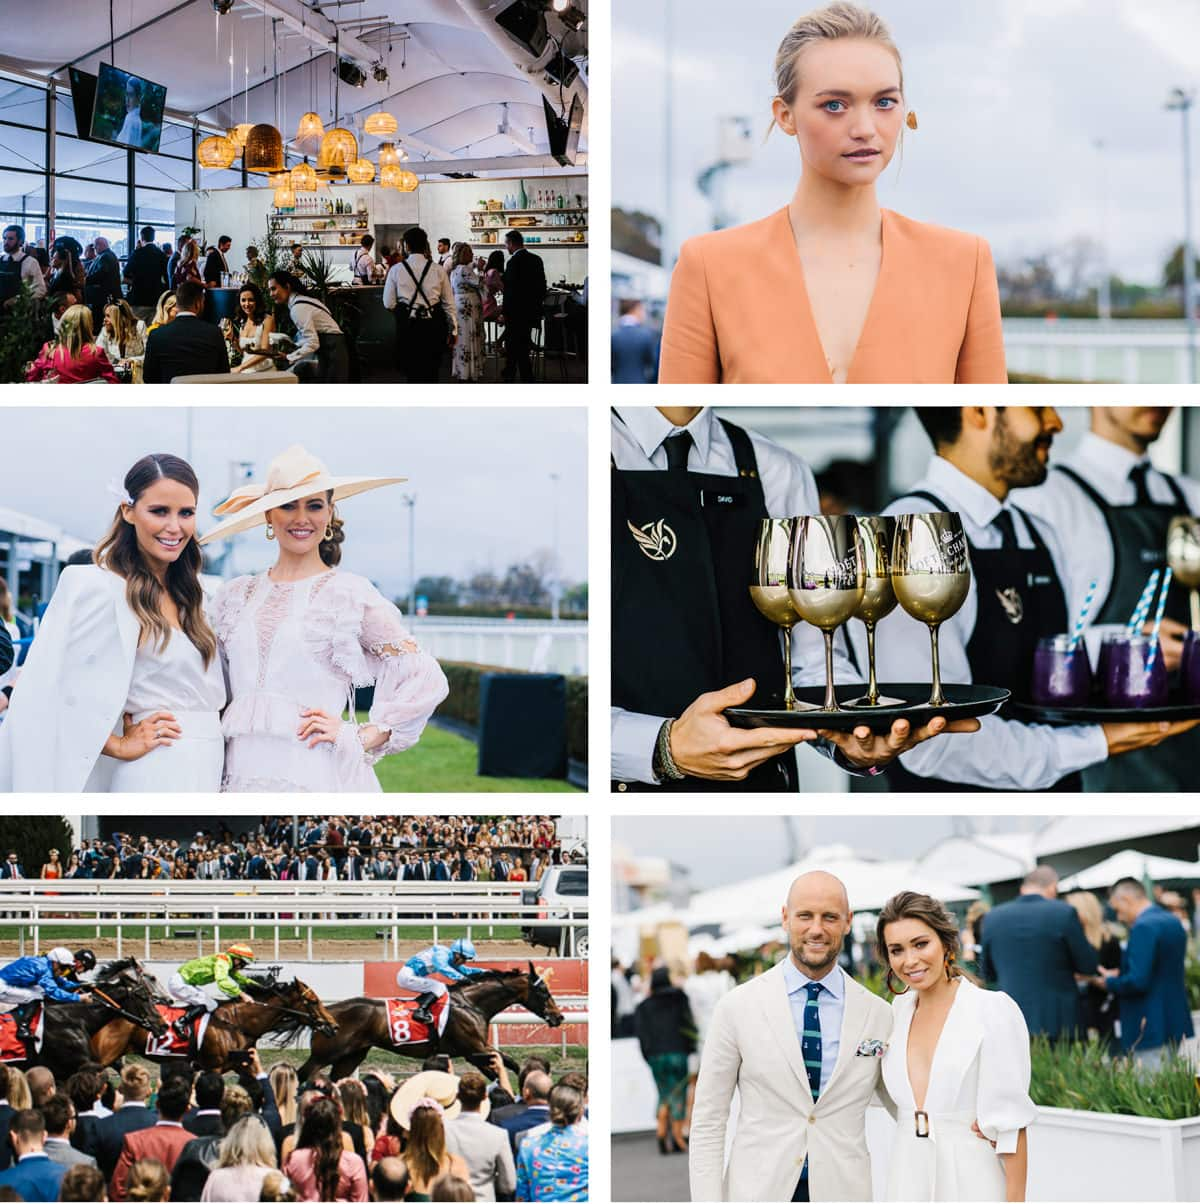 Photographing an outdoor event in Melbourne - Influencer Marketing and PR photos in Melbourne